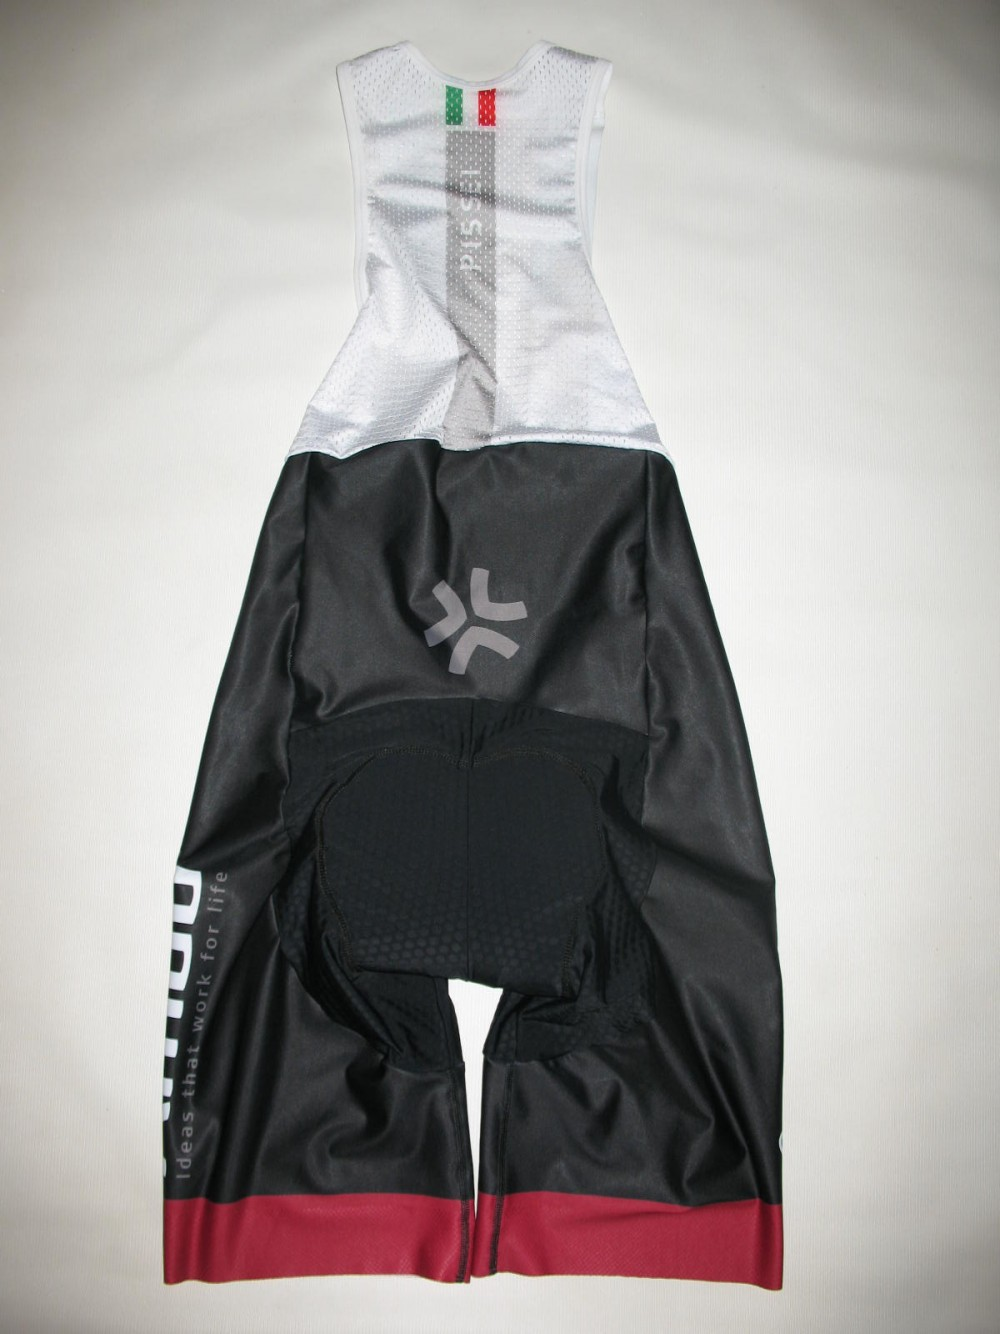 Велошорты PISSEI ambu bib cycling pants (размер 7/XXXL) - 1